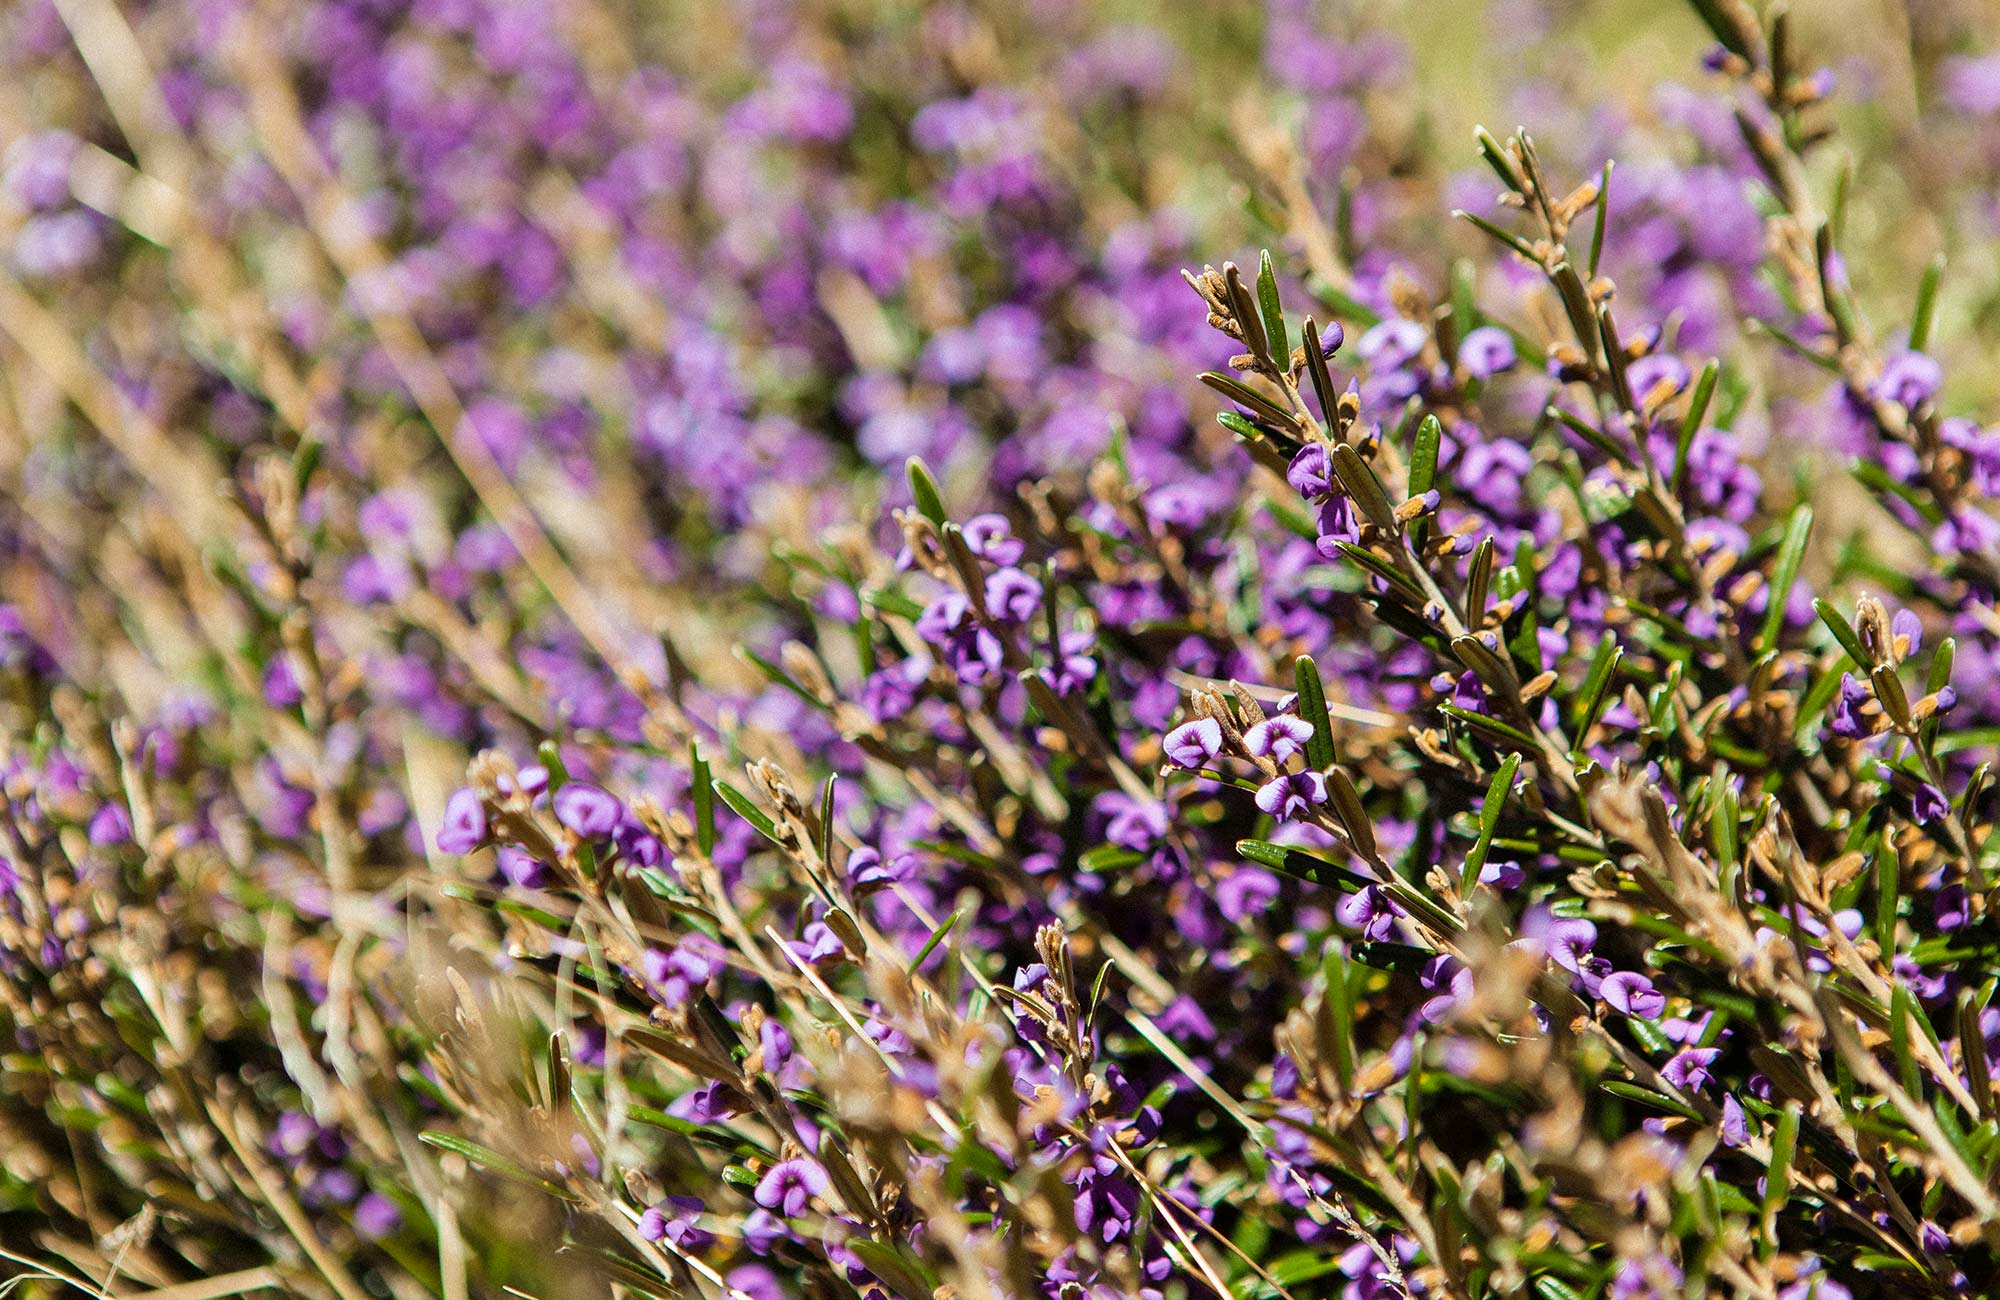 Purple flowering heath, Perisher Valley, Kosciuszko National Park. Photo: Murray Vanderveer/OEH